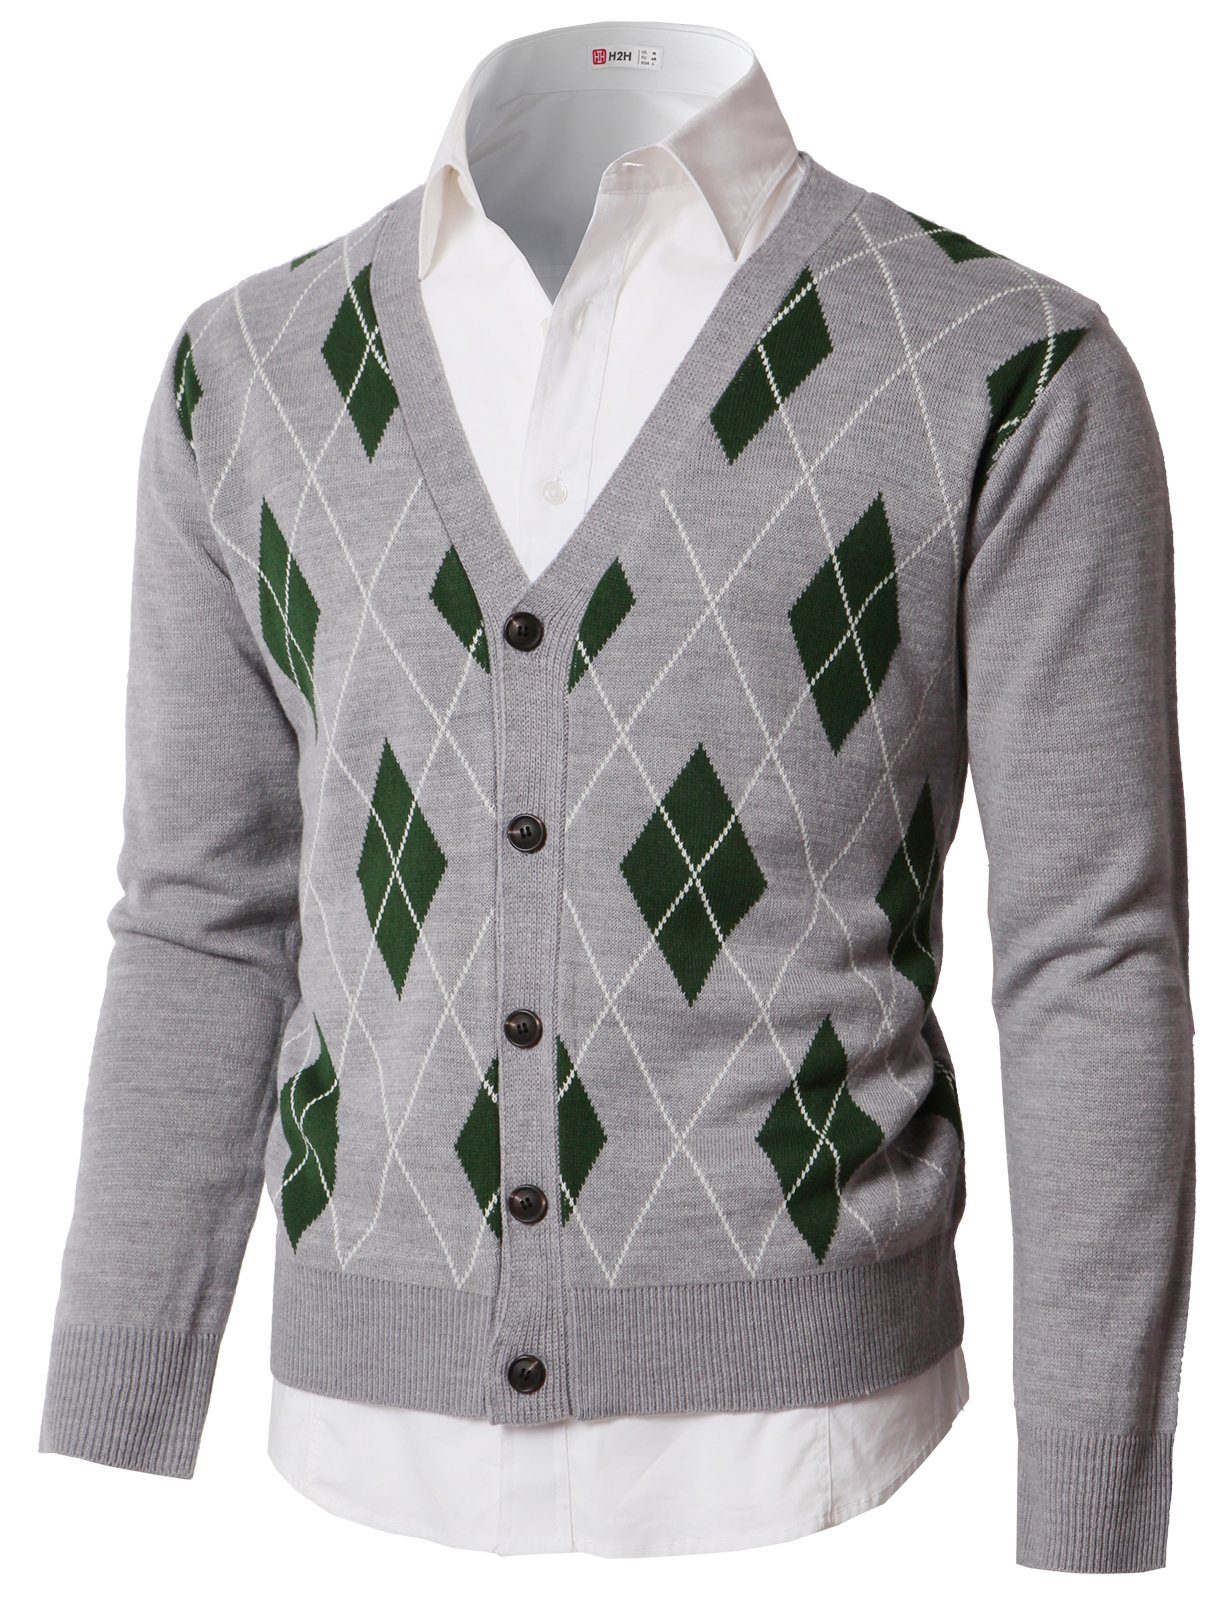 H2H Mens Casual Slim Fit Argyle Patterned V-Neck Collar Button Down Cardigan Sweater Gray US L/Asia XL (KMOCAL0189)